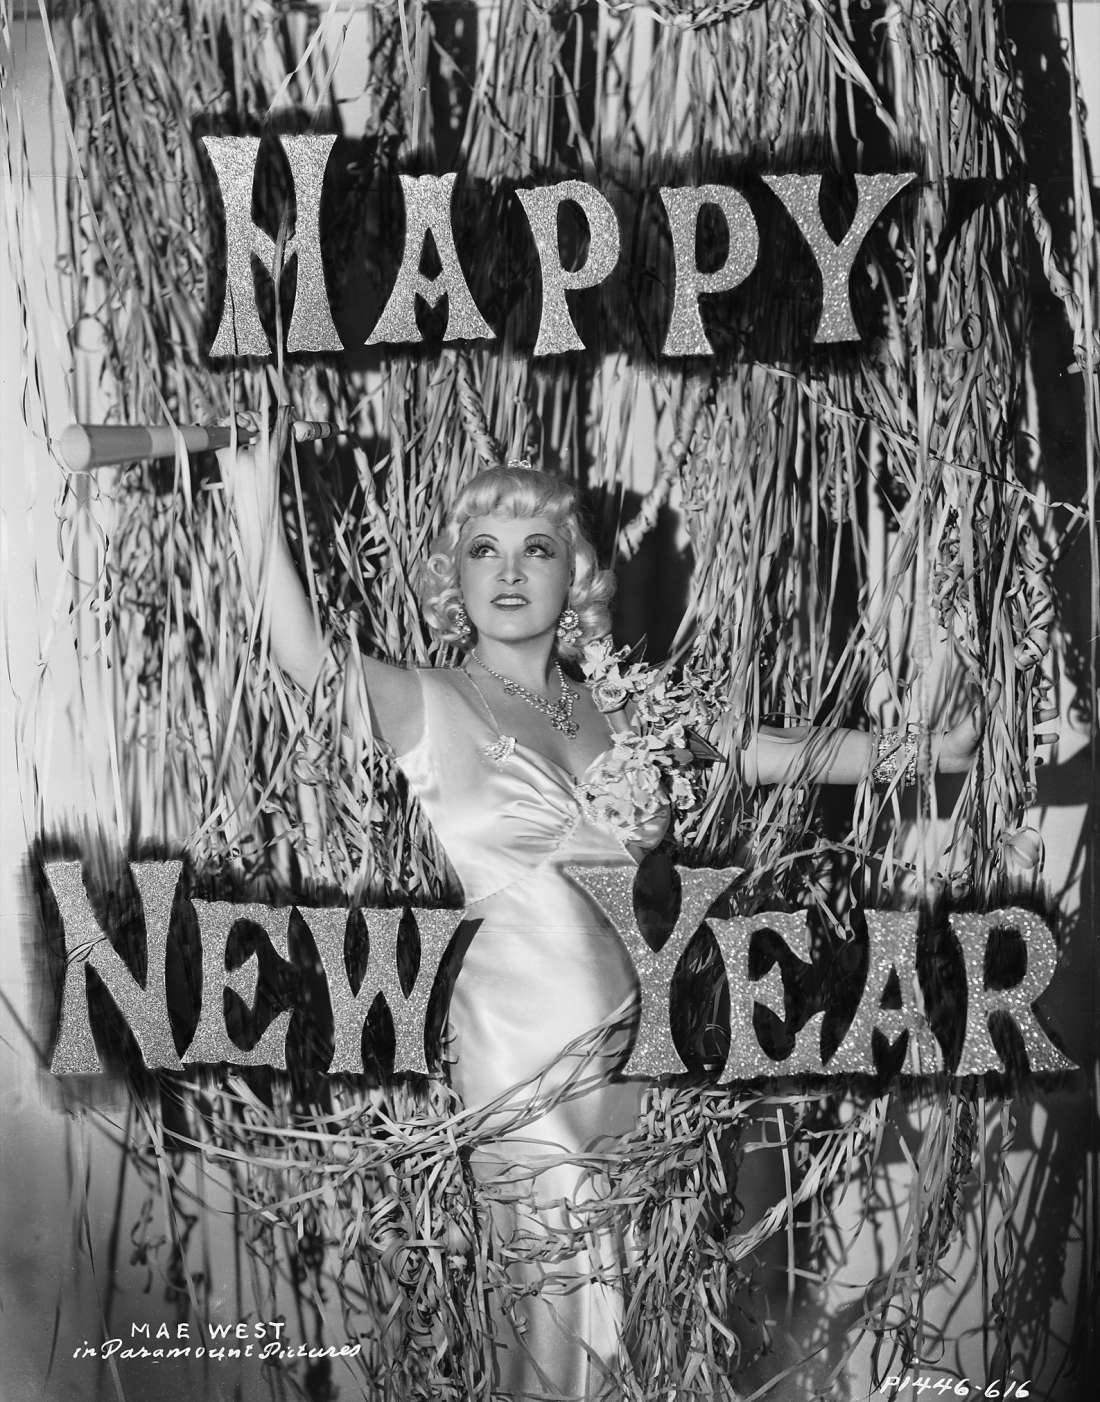 Seasonal greetings from the original Hollywood sex symbol, Mae West, 1936.